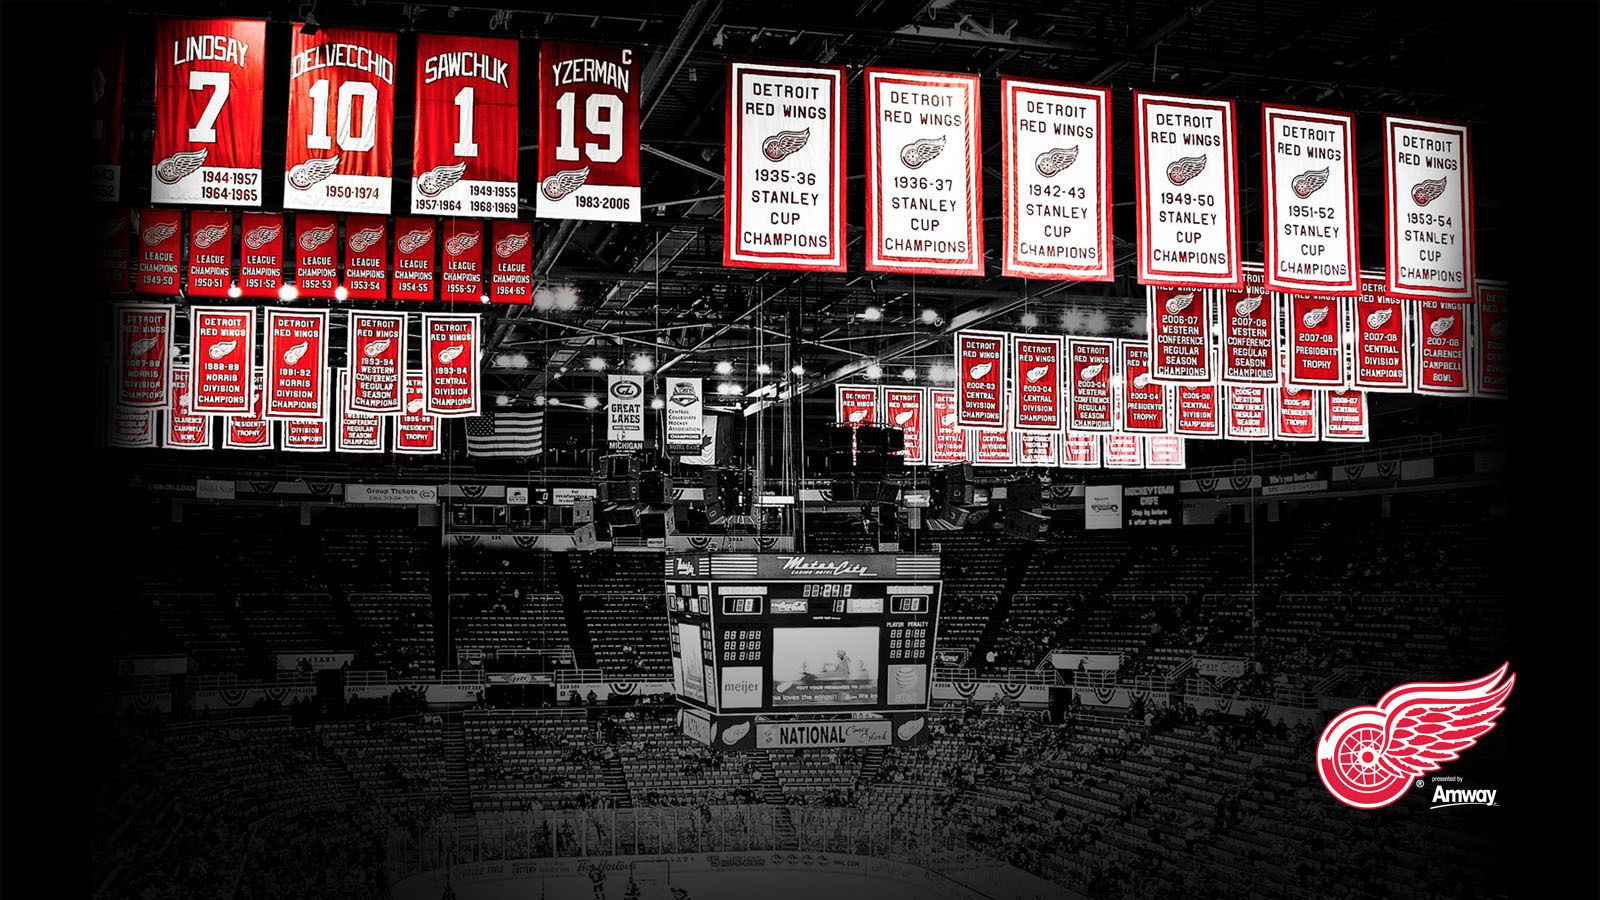 DEF Dispo Detroit-red-wings-wallpaper-38